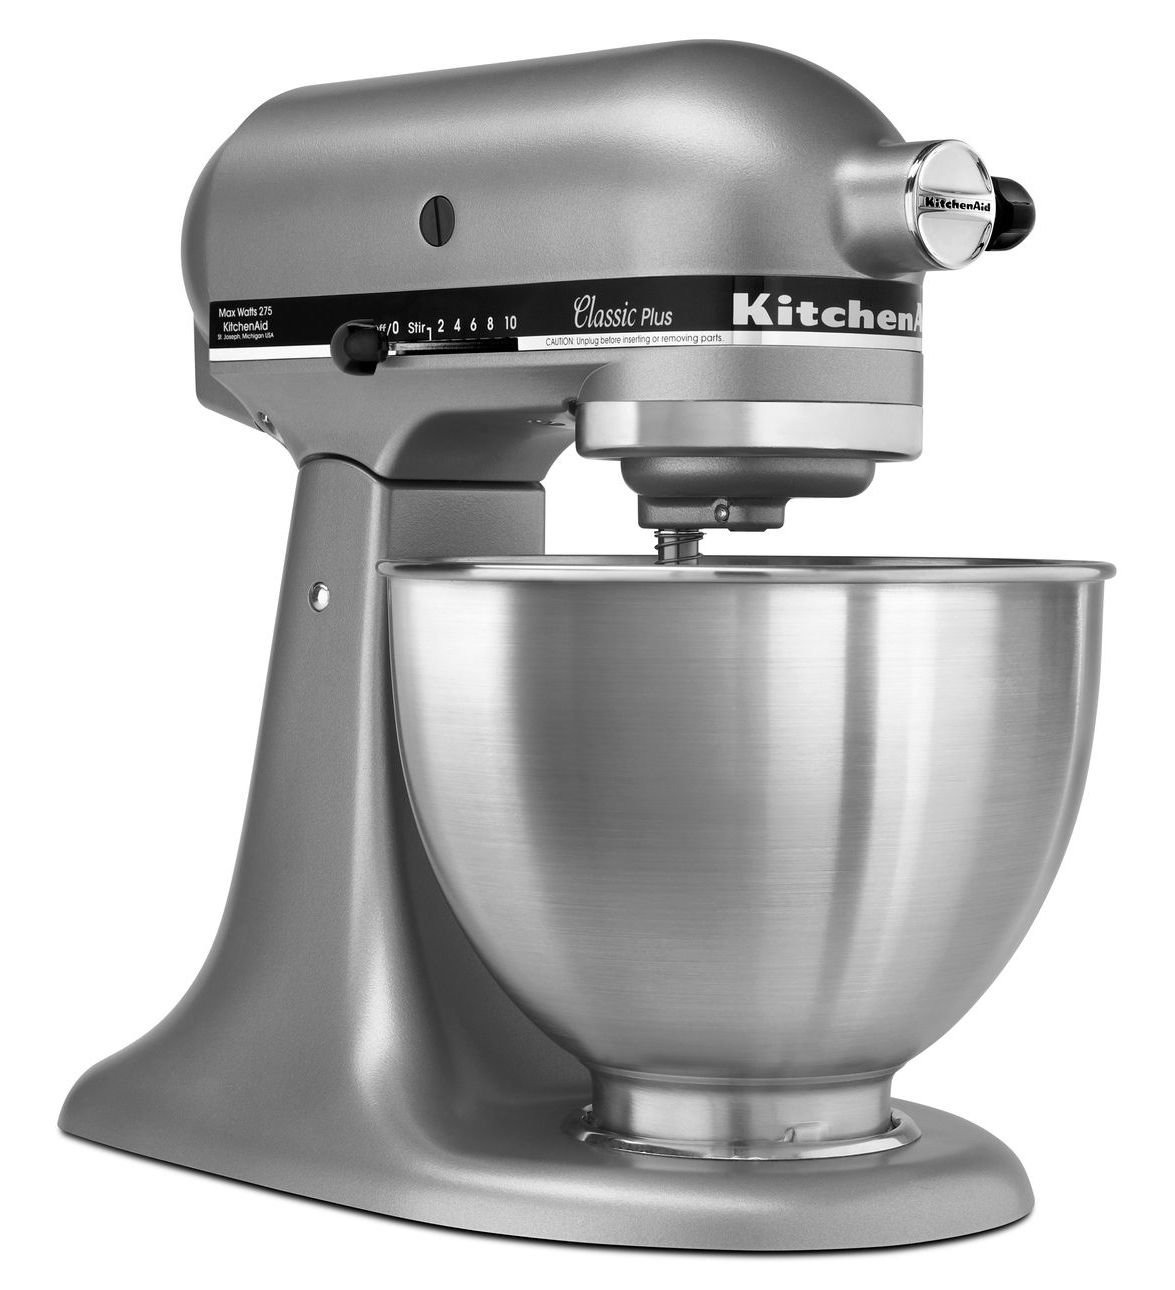 Lovely Amazon.com: KitchenAid KSM75SL Classic Plus 4.5 Qt. Tilt Head Stand Mixer,  Silver: Electric Stand Mixers: Kitchen U0026 Dining